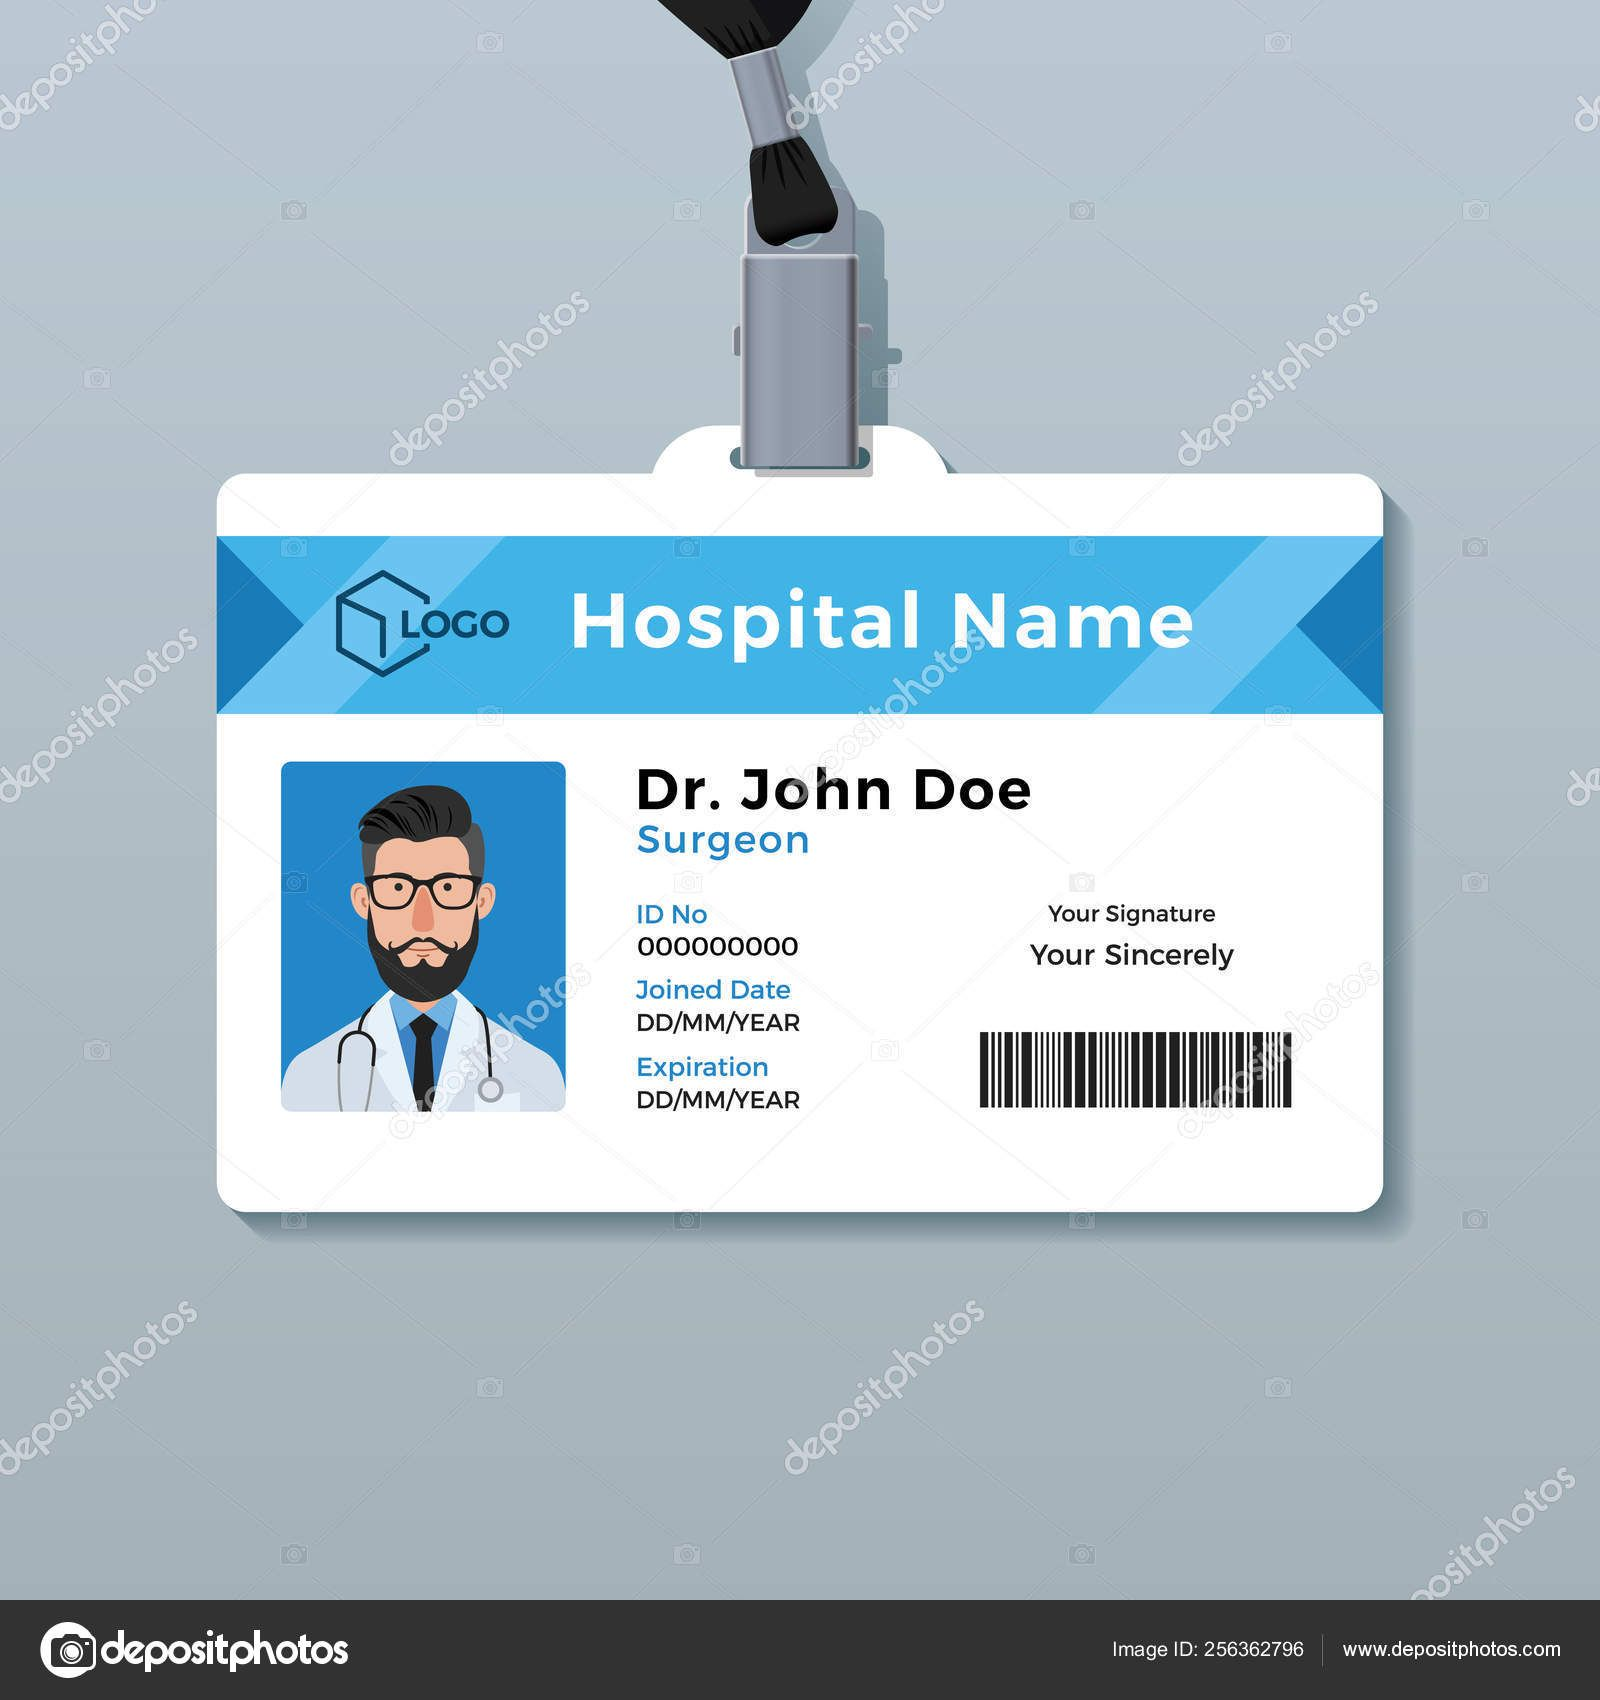 Medical Id Card Template Doctor Id Card Template Medical Intended For Personal Identification Car Id Card Template Card Template Business Card Template Word